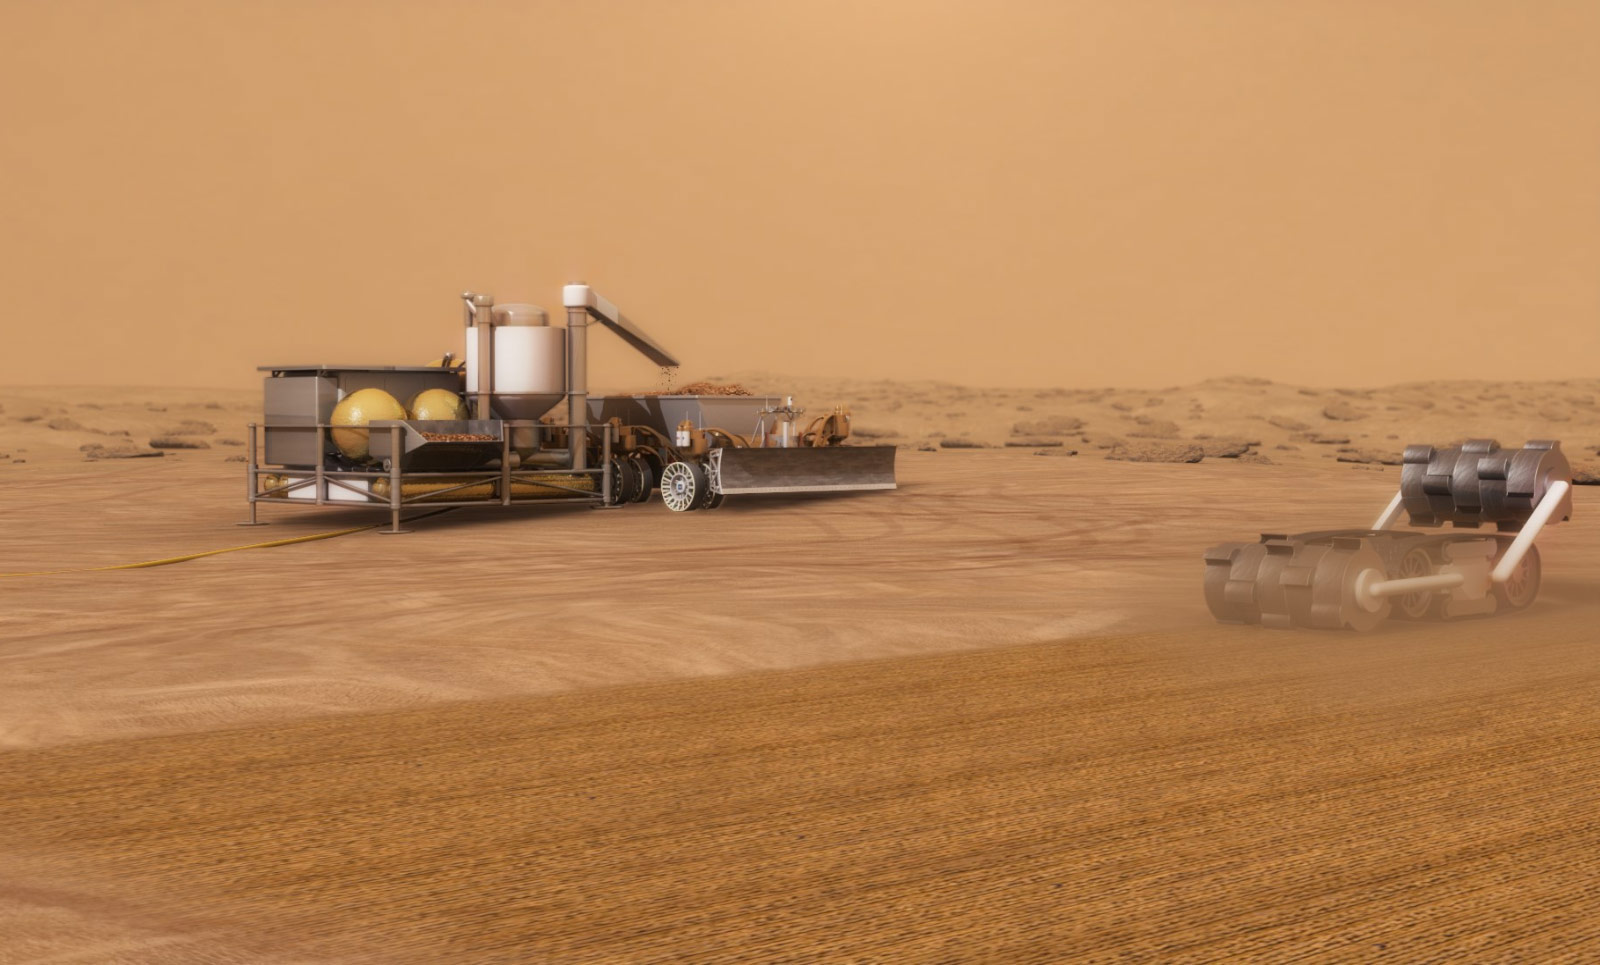 ISRU system concept for autonomous robotic excavation and processing of Mars soil to extract water for use in exploration missions.